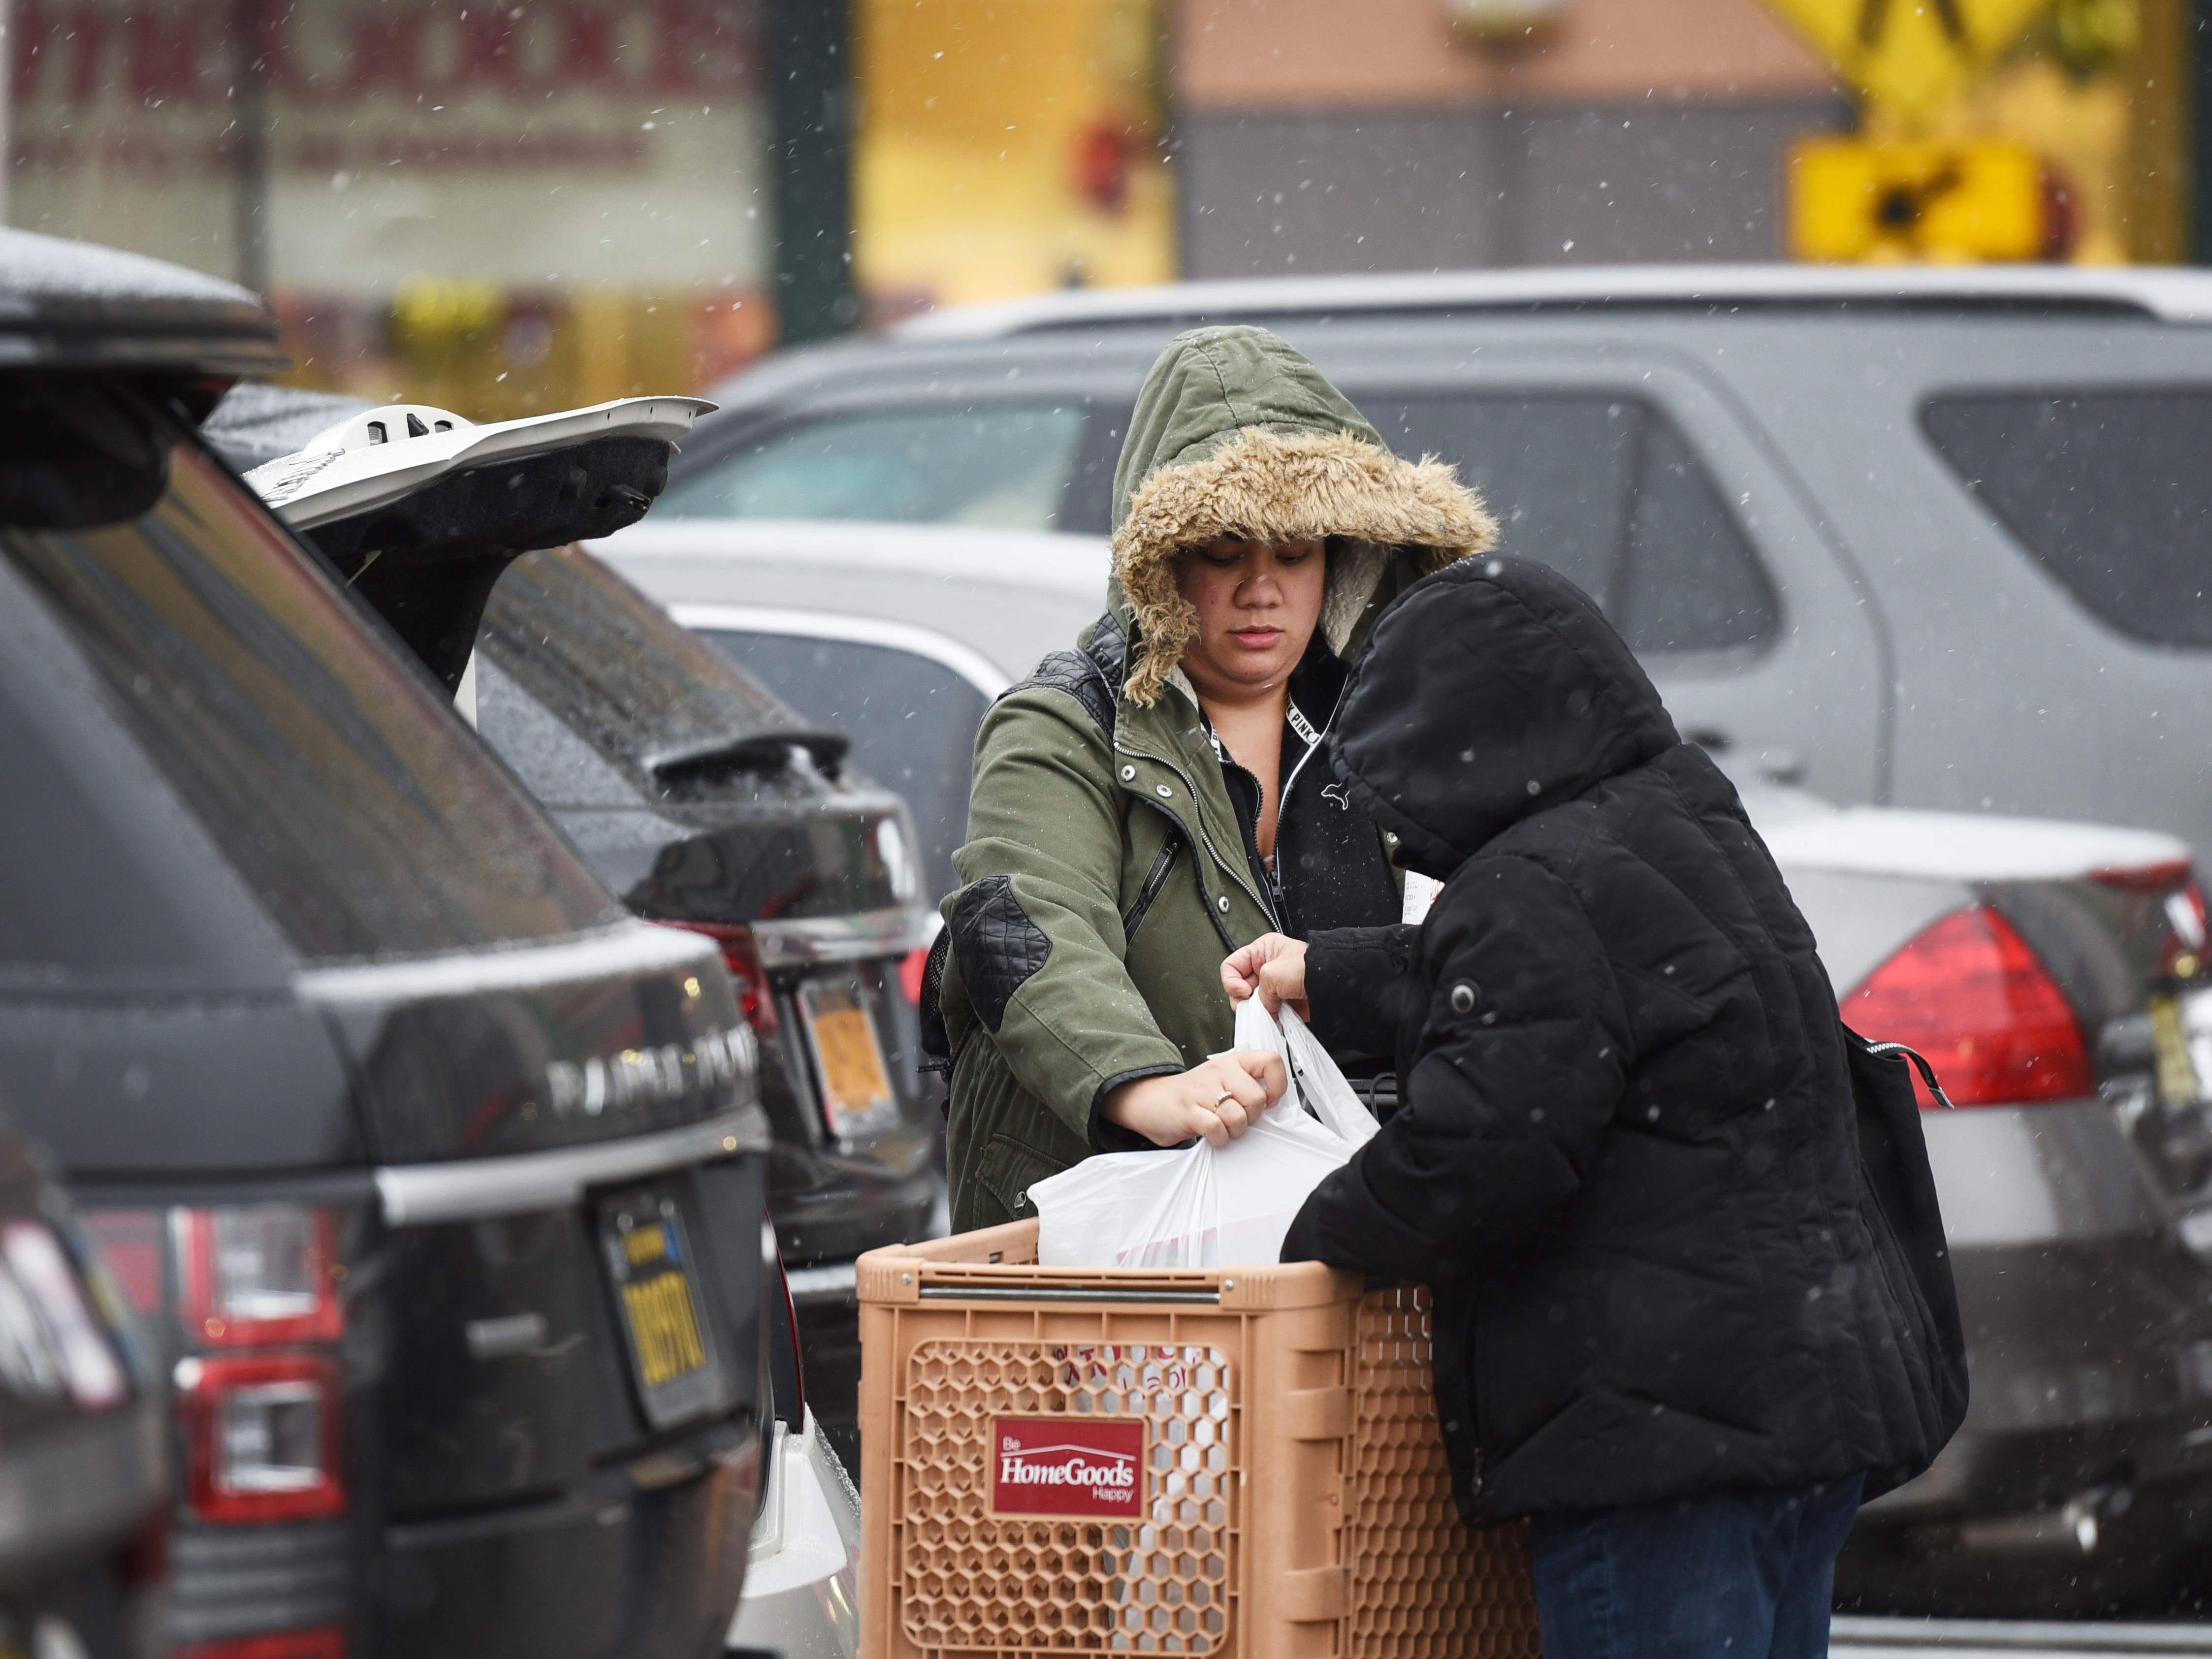 November 15, 2018, Paramus, NJ, USAShoppers load their items into their car as the snow begins to fall at Bergen Town Center.